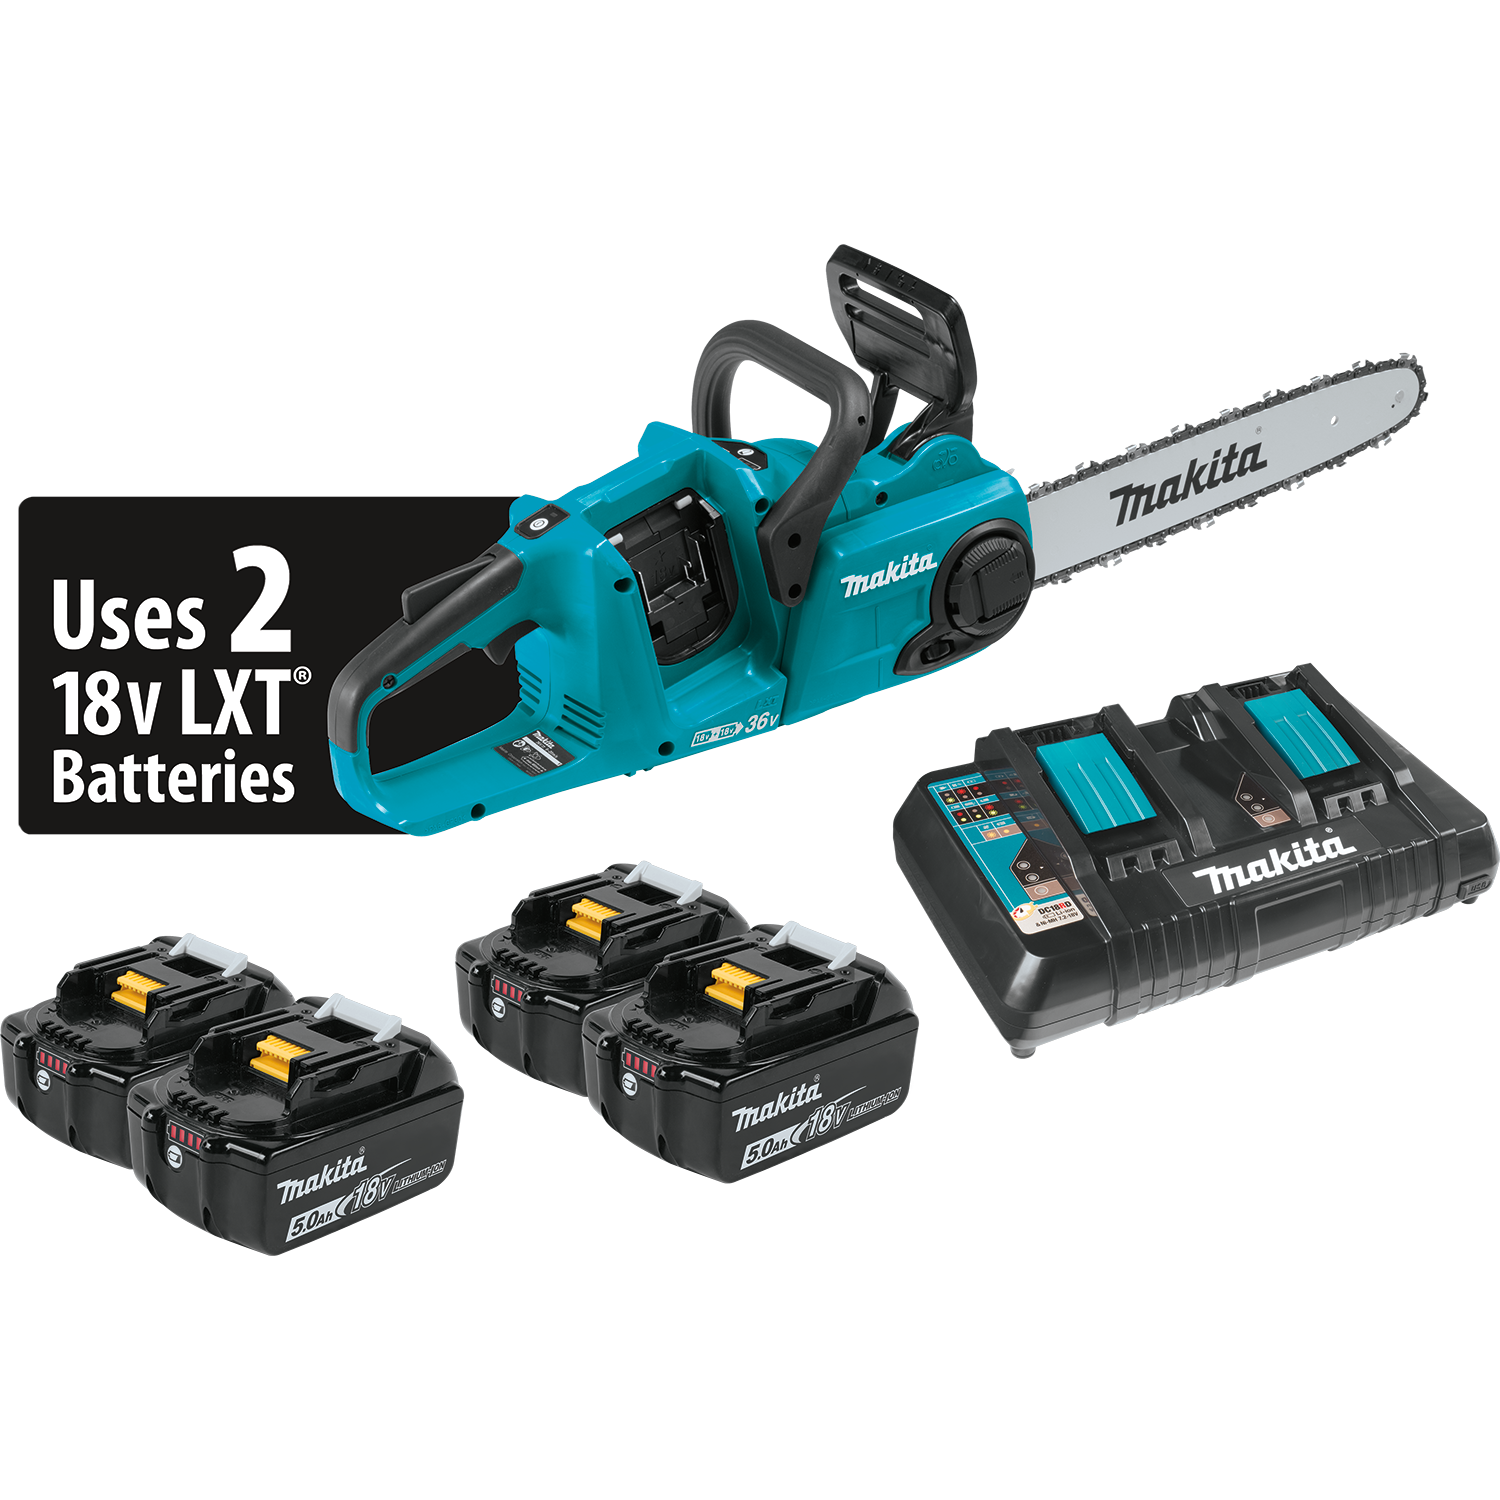 Makita usa product details xcu03pt1 xcu03pt1 greentooth Choice Image